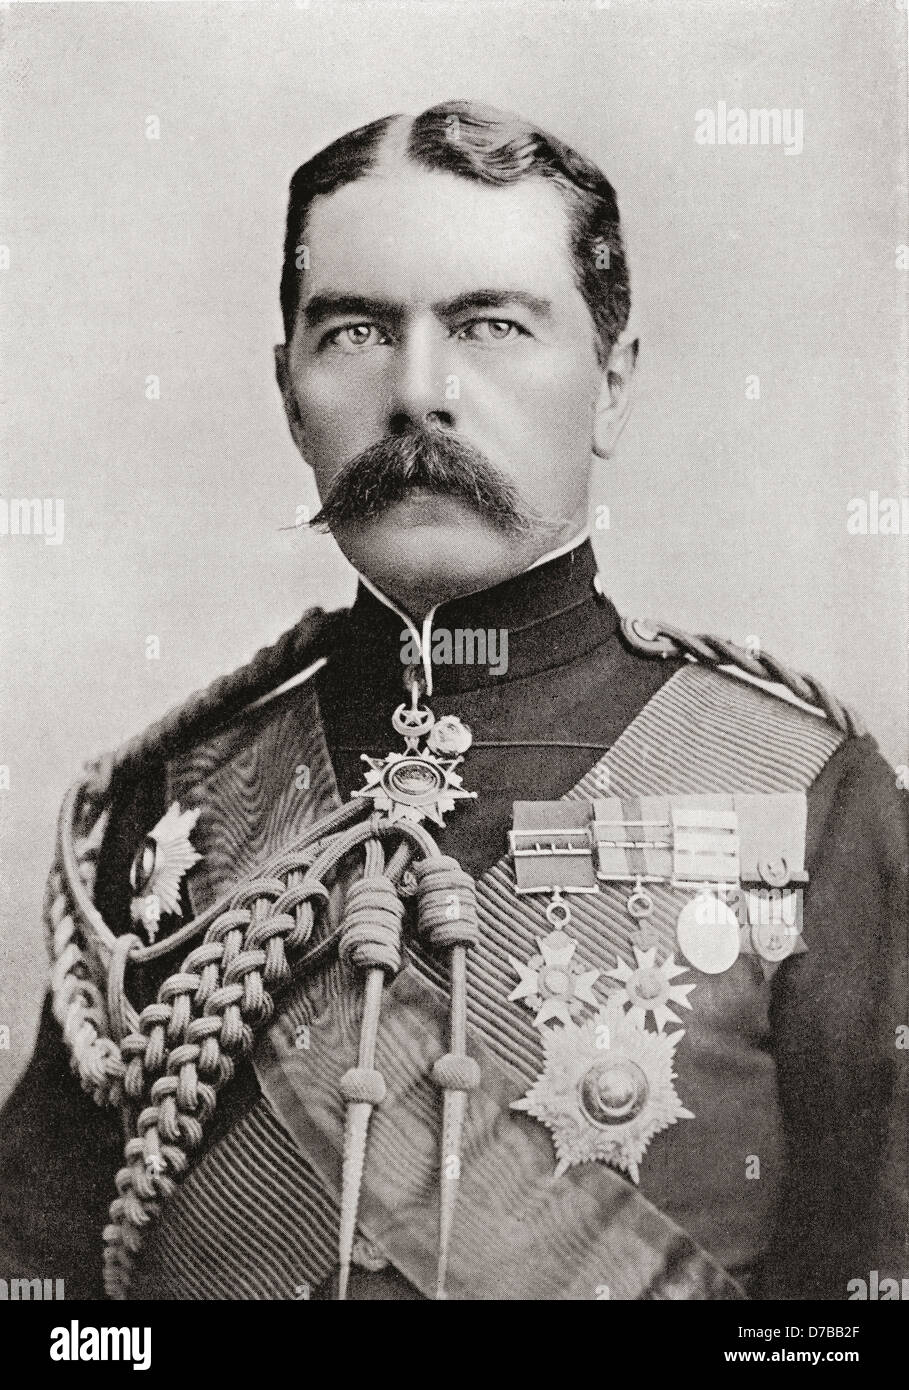 Lord Kitchener in 1896, when, as Brigadier-General Sir H.H. Kitchener, he held the position of Sirdar of the Egyptian - Stock Image